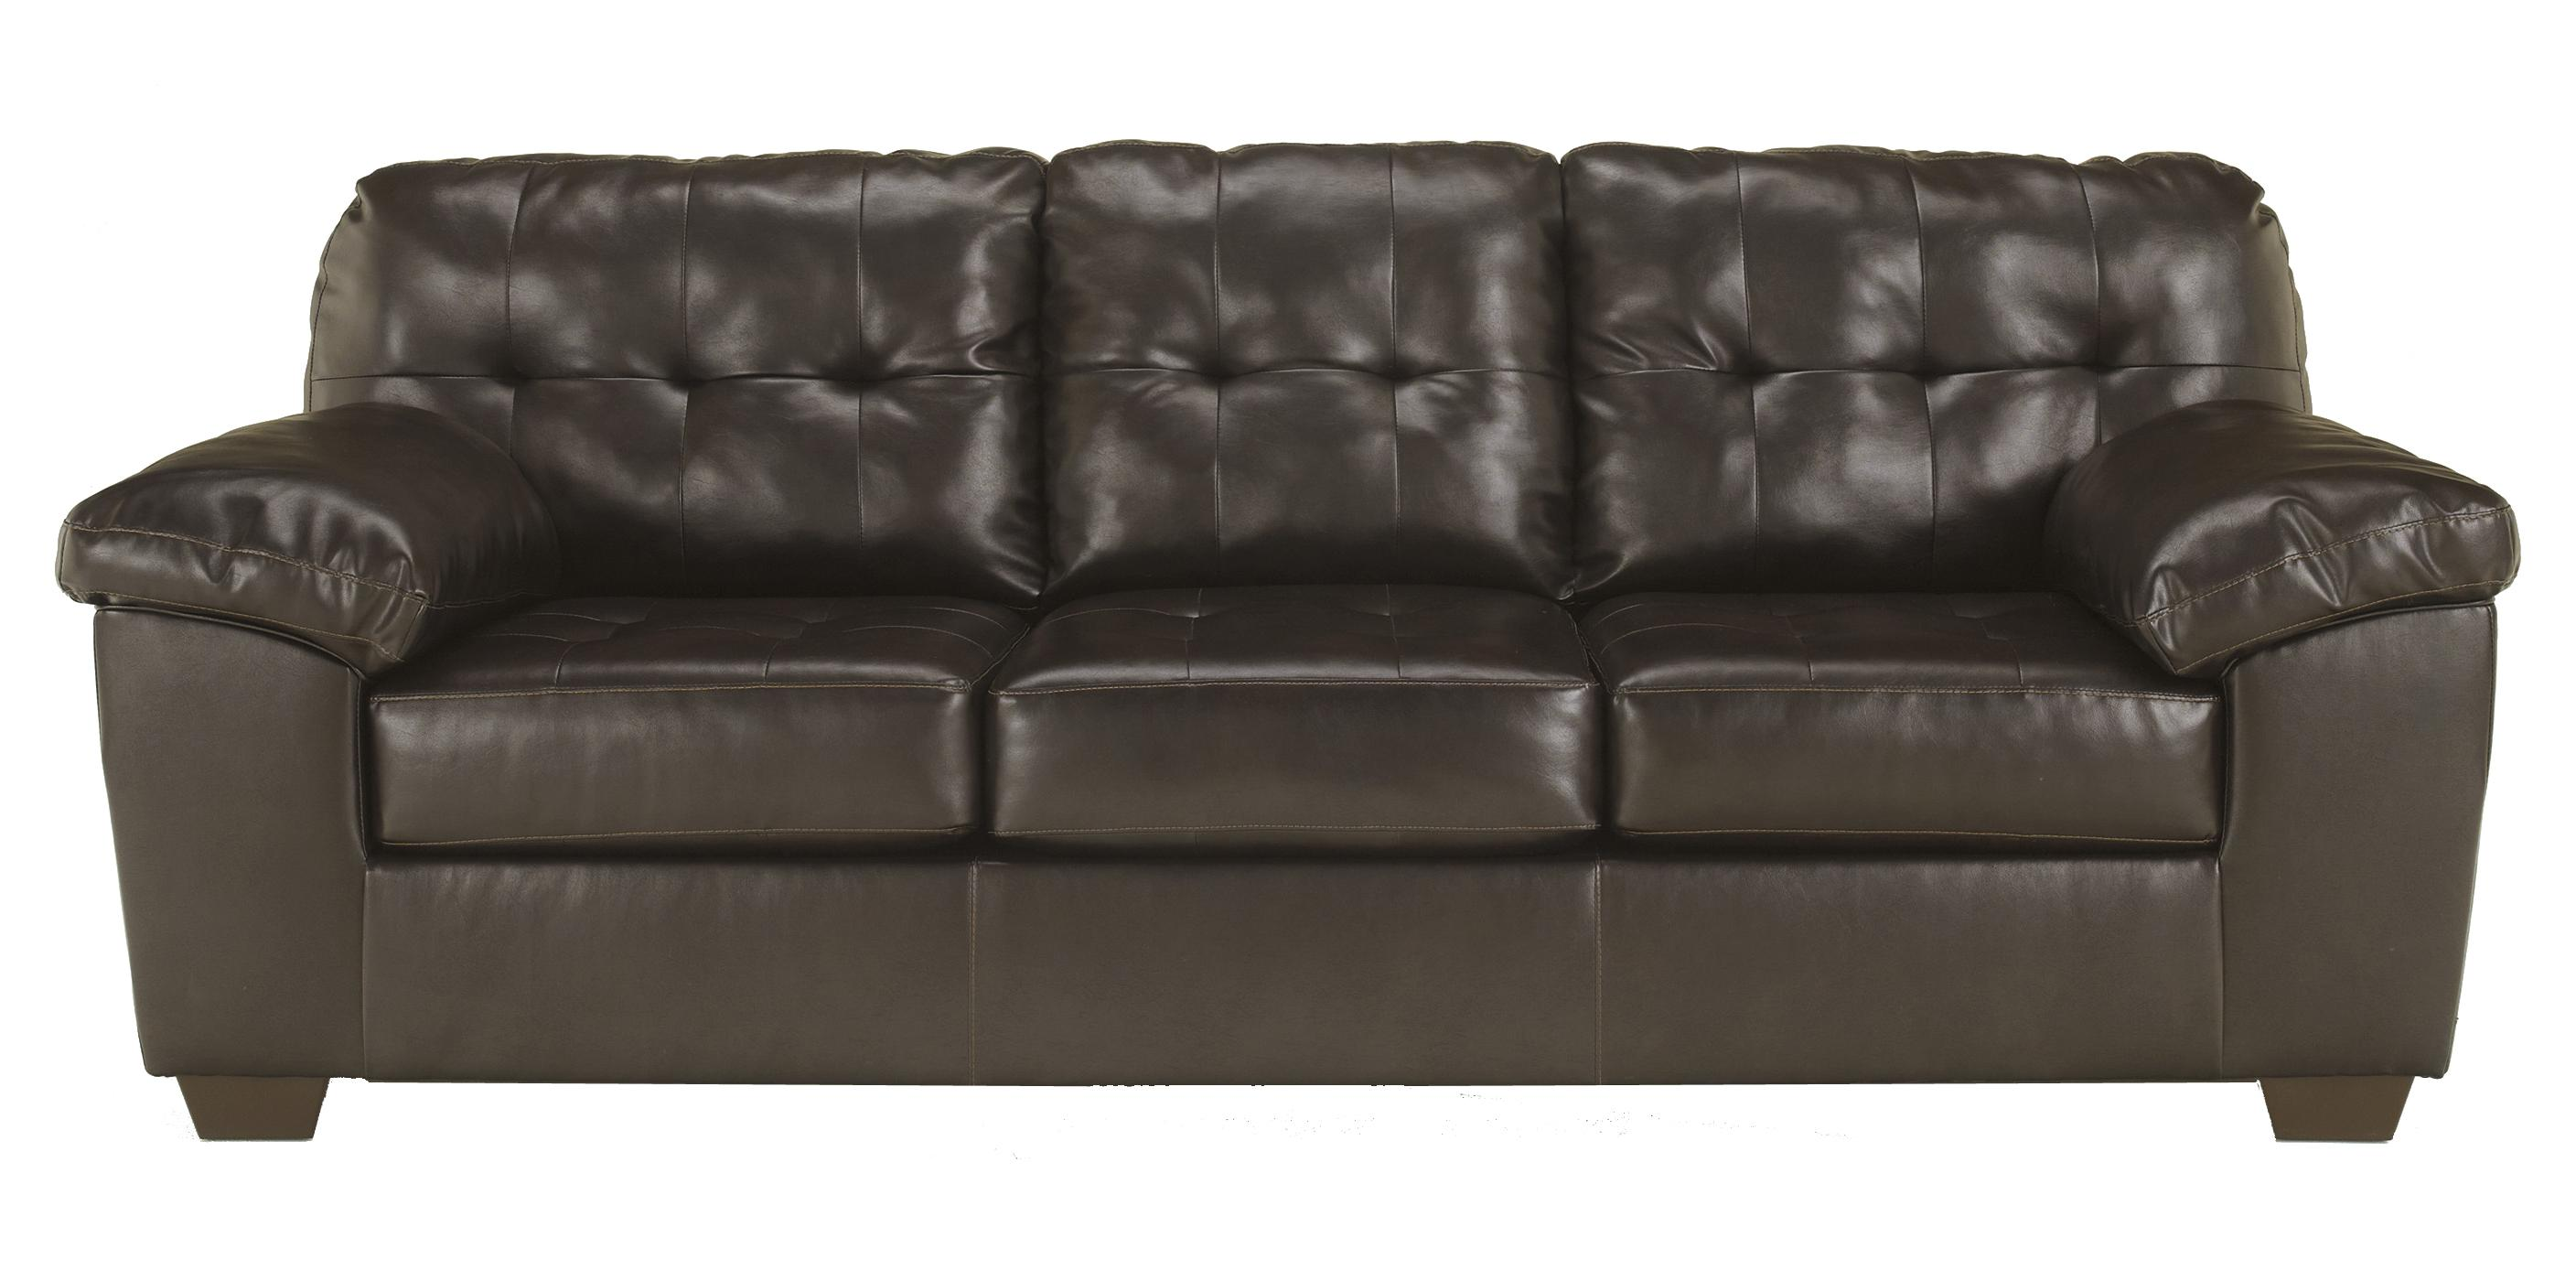 Alliston DuraBlend® - Chocolate Sofa by Signature Design by Ashley at Northeast Factory Direct